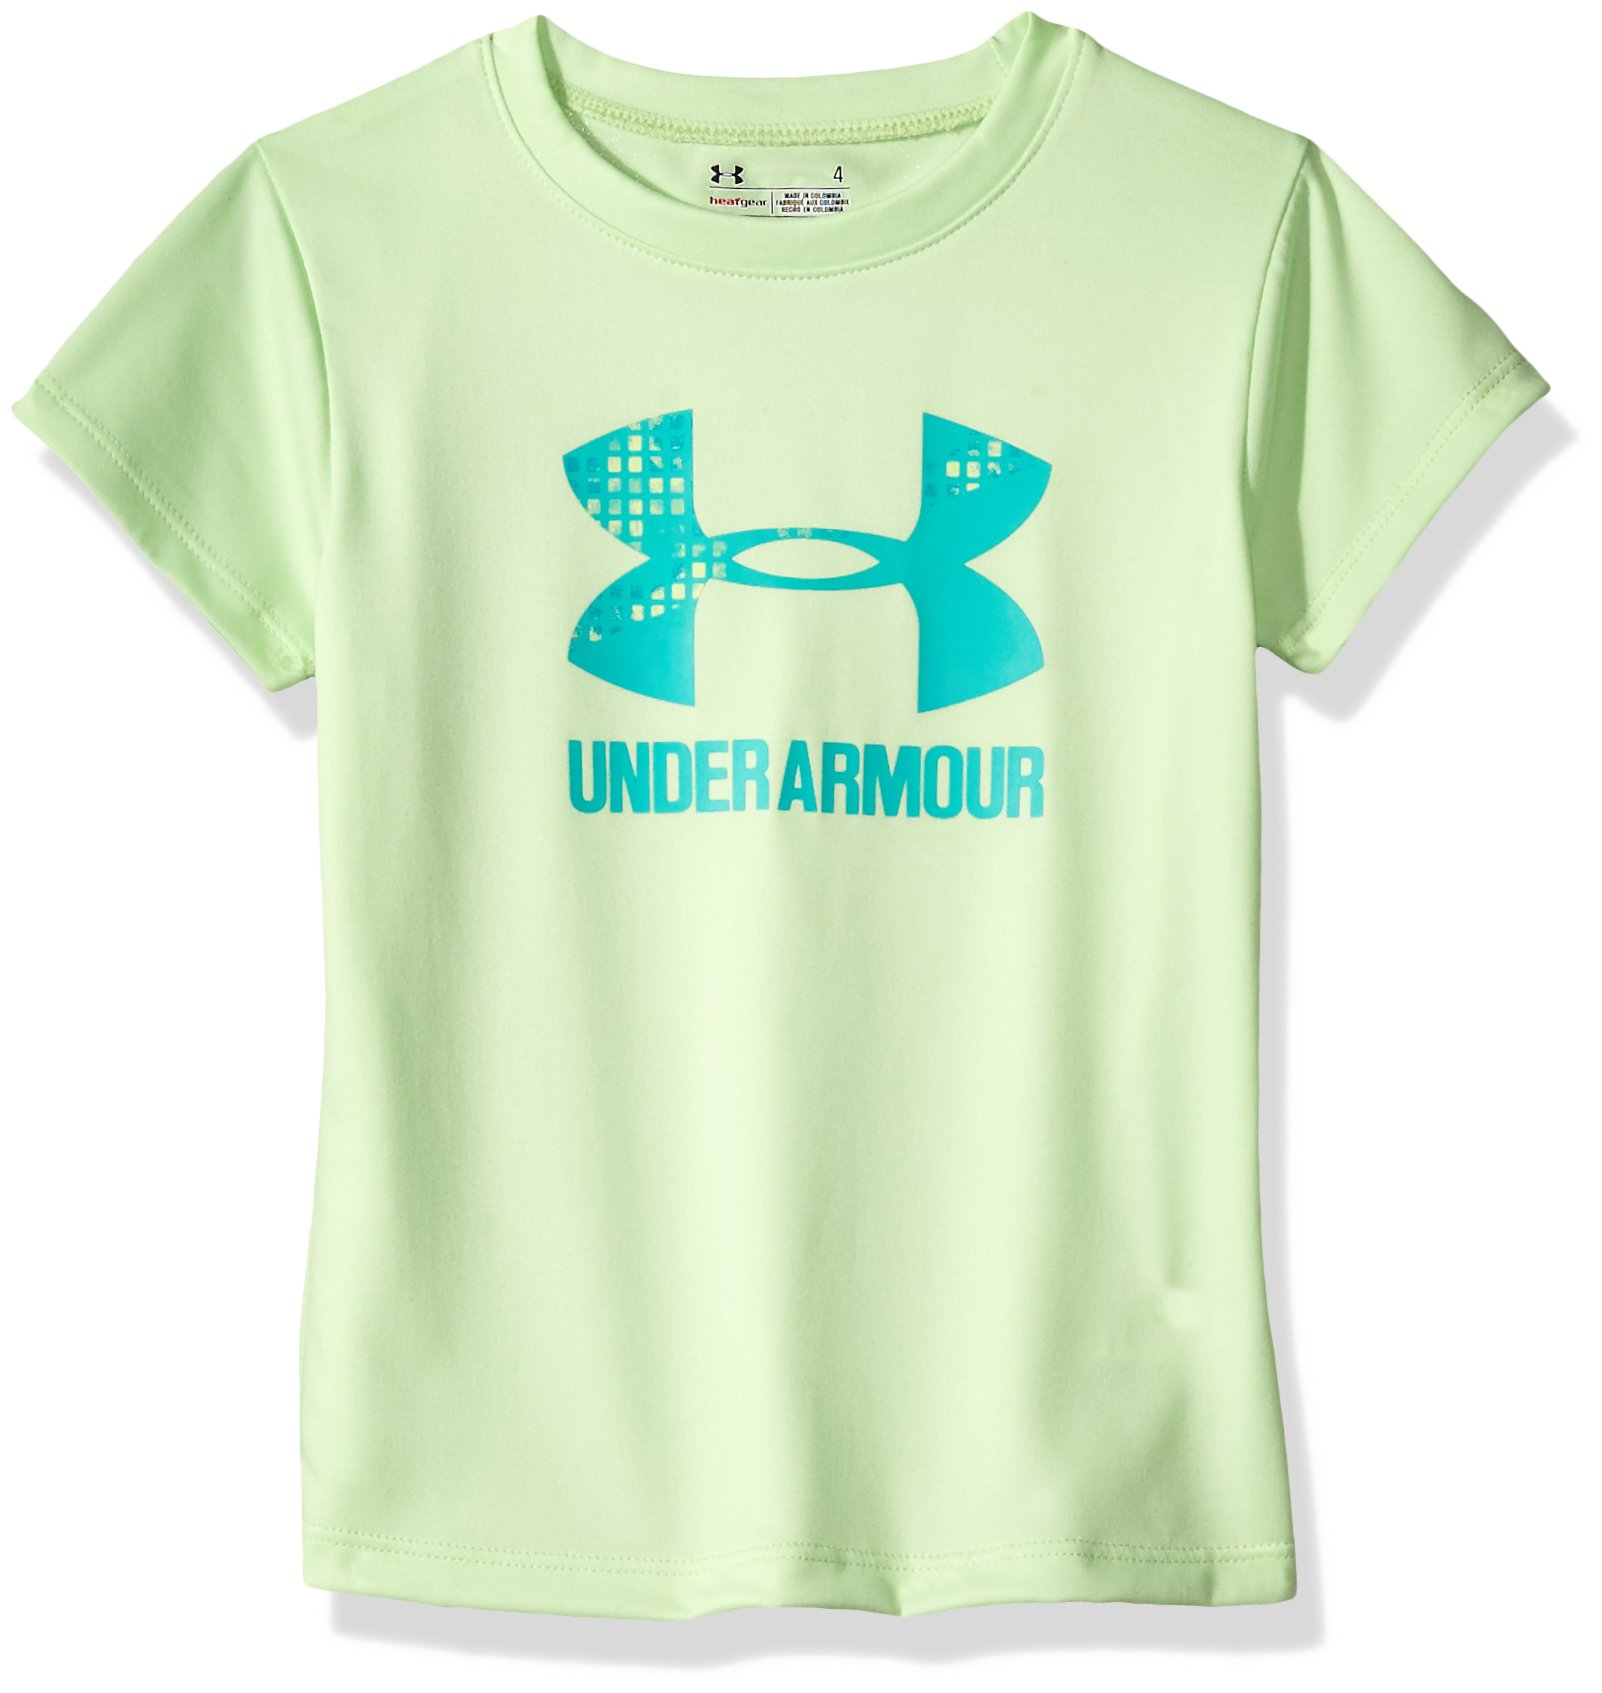 Under Armour Girls' Big Logo T-Shirt, Summer Lime, 4